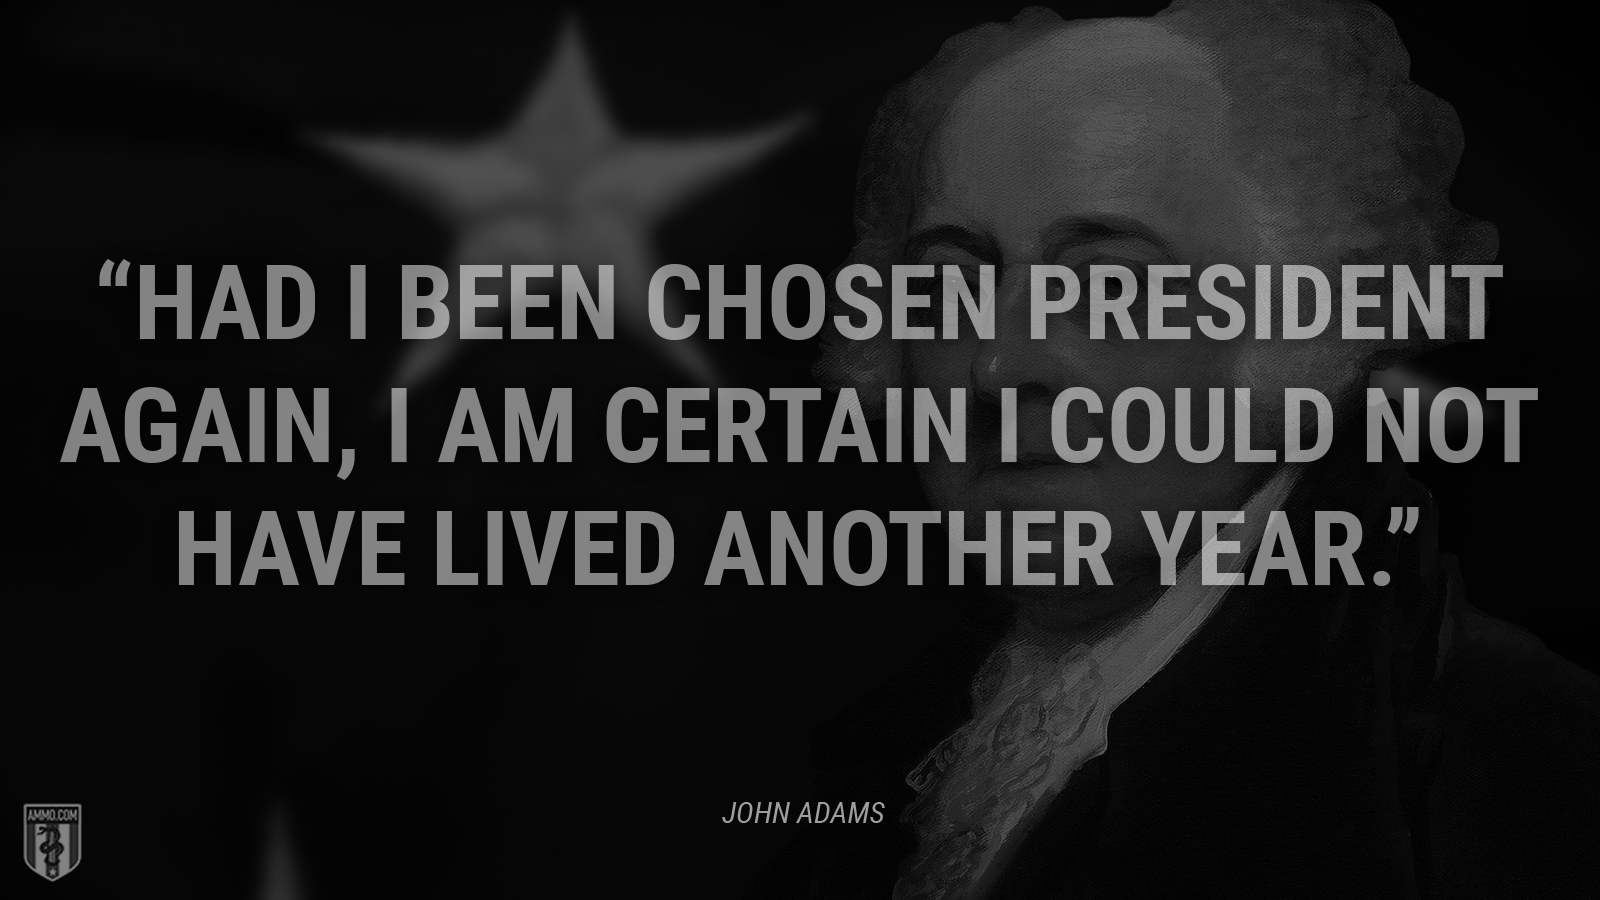 """Had I been chosen president again, I am certain I could not have lived another year."" - John Adams"